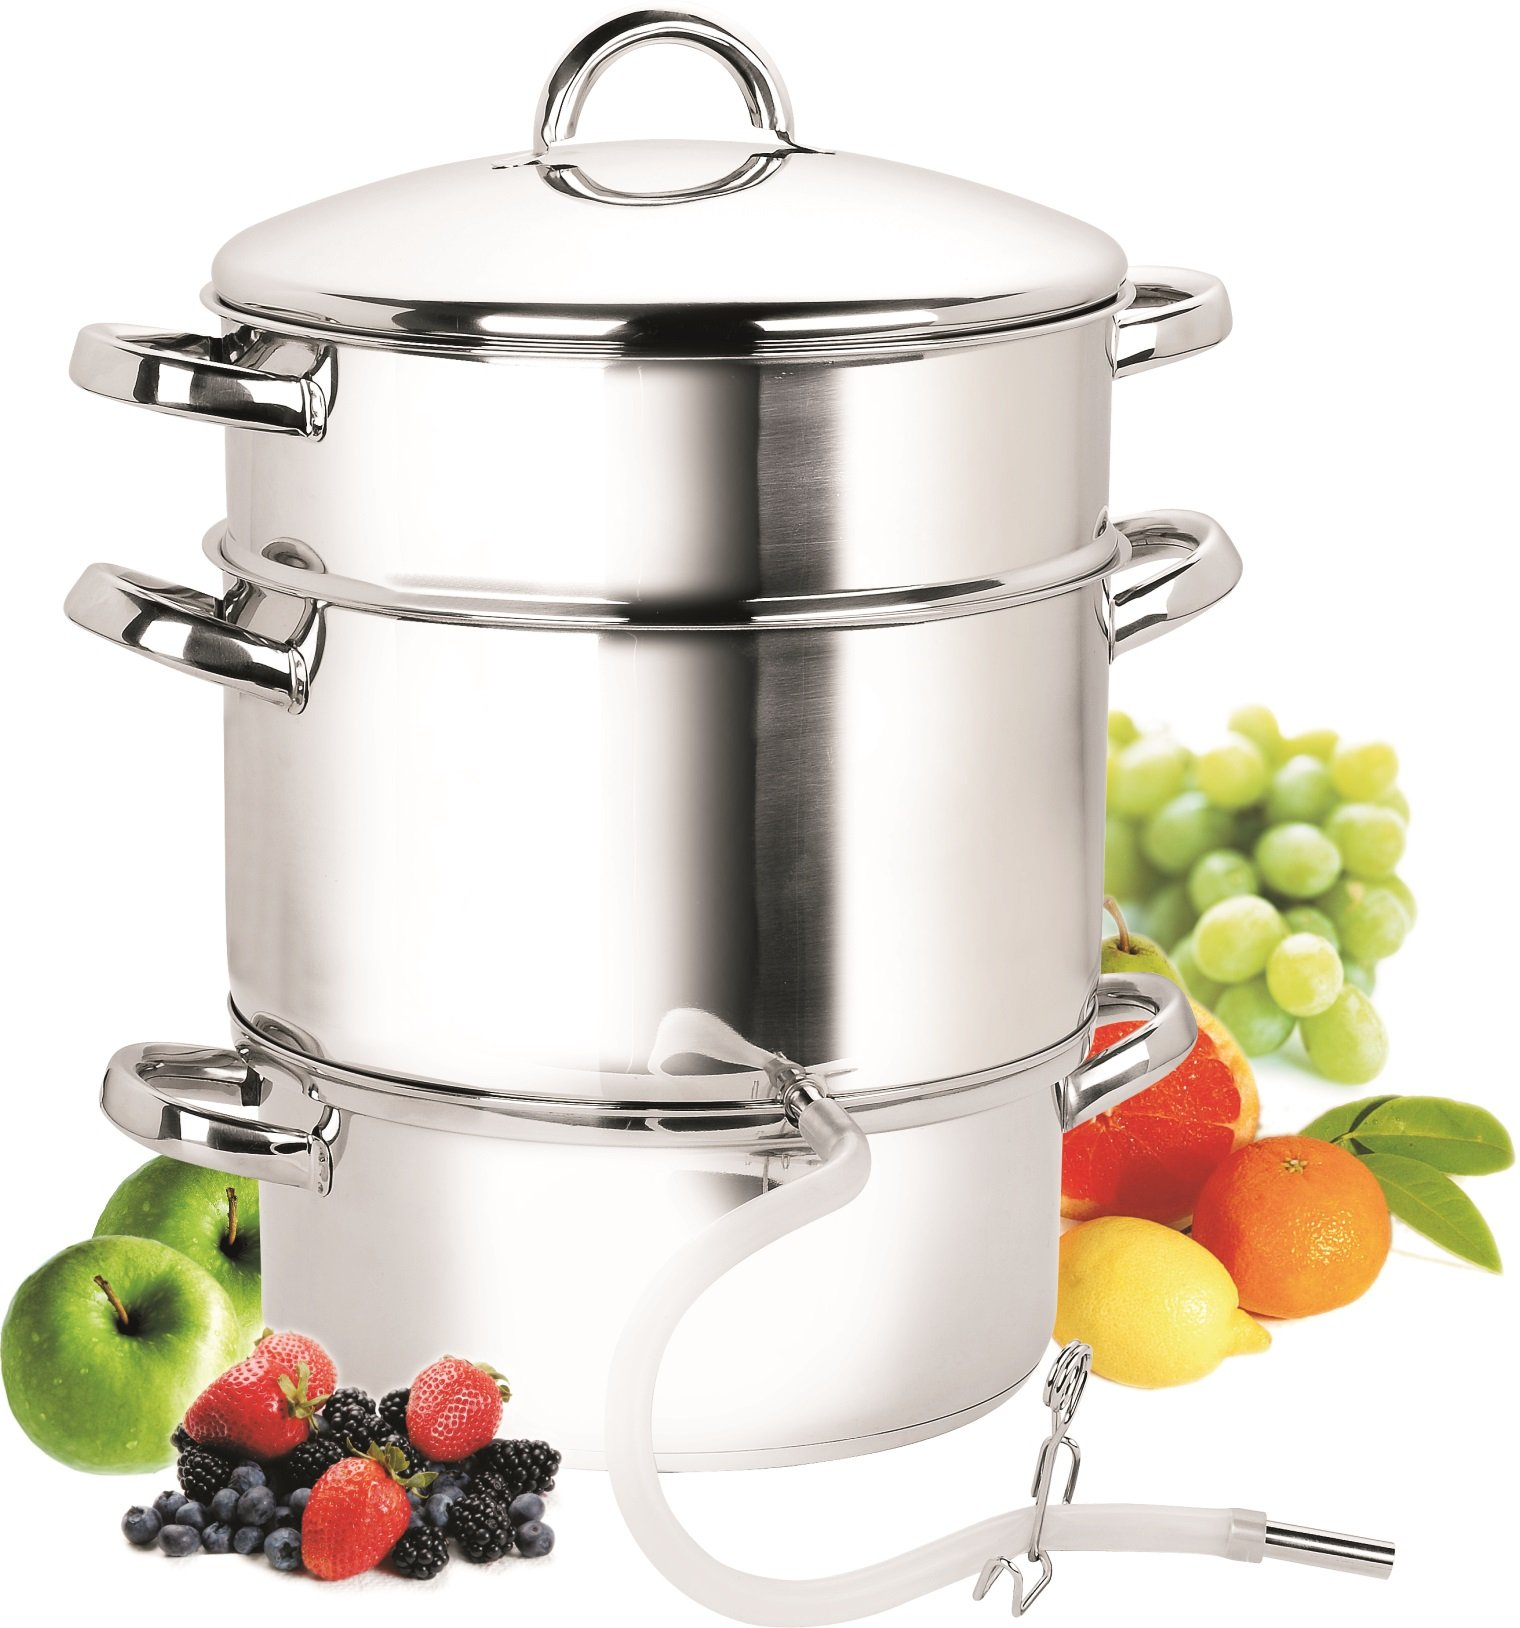 Cook N Home NC-00256 11-Quart Stainless-Steel Juicer Steamer by Cook N Home